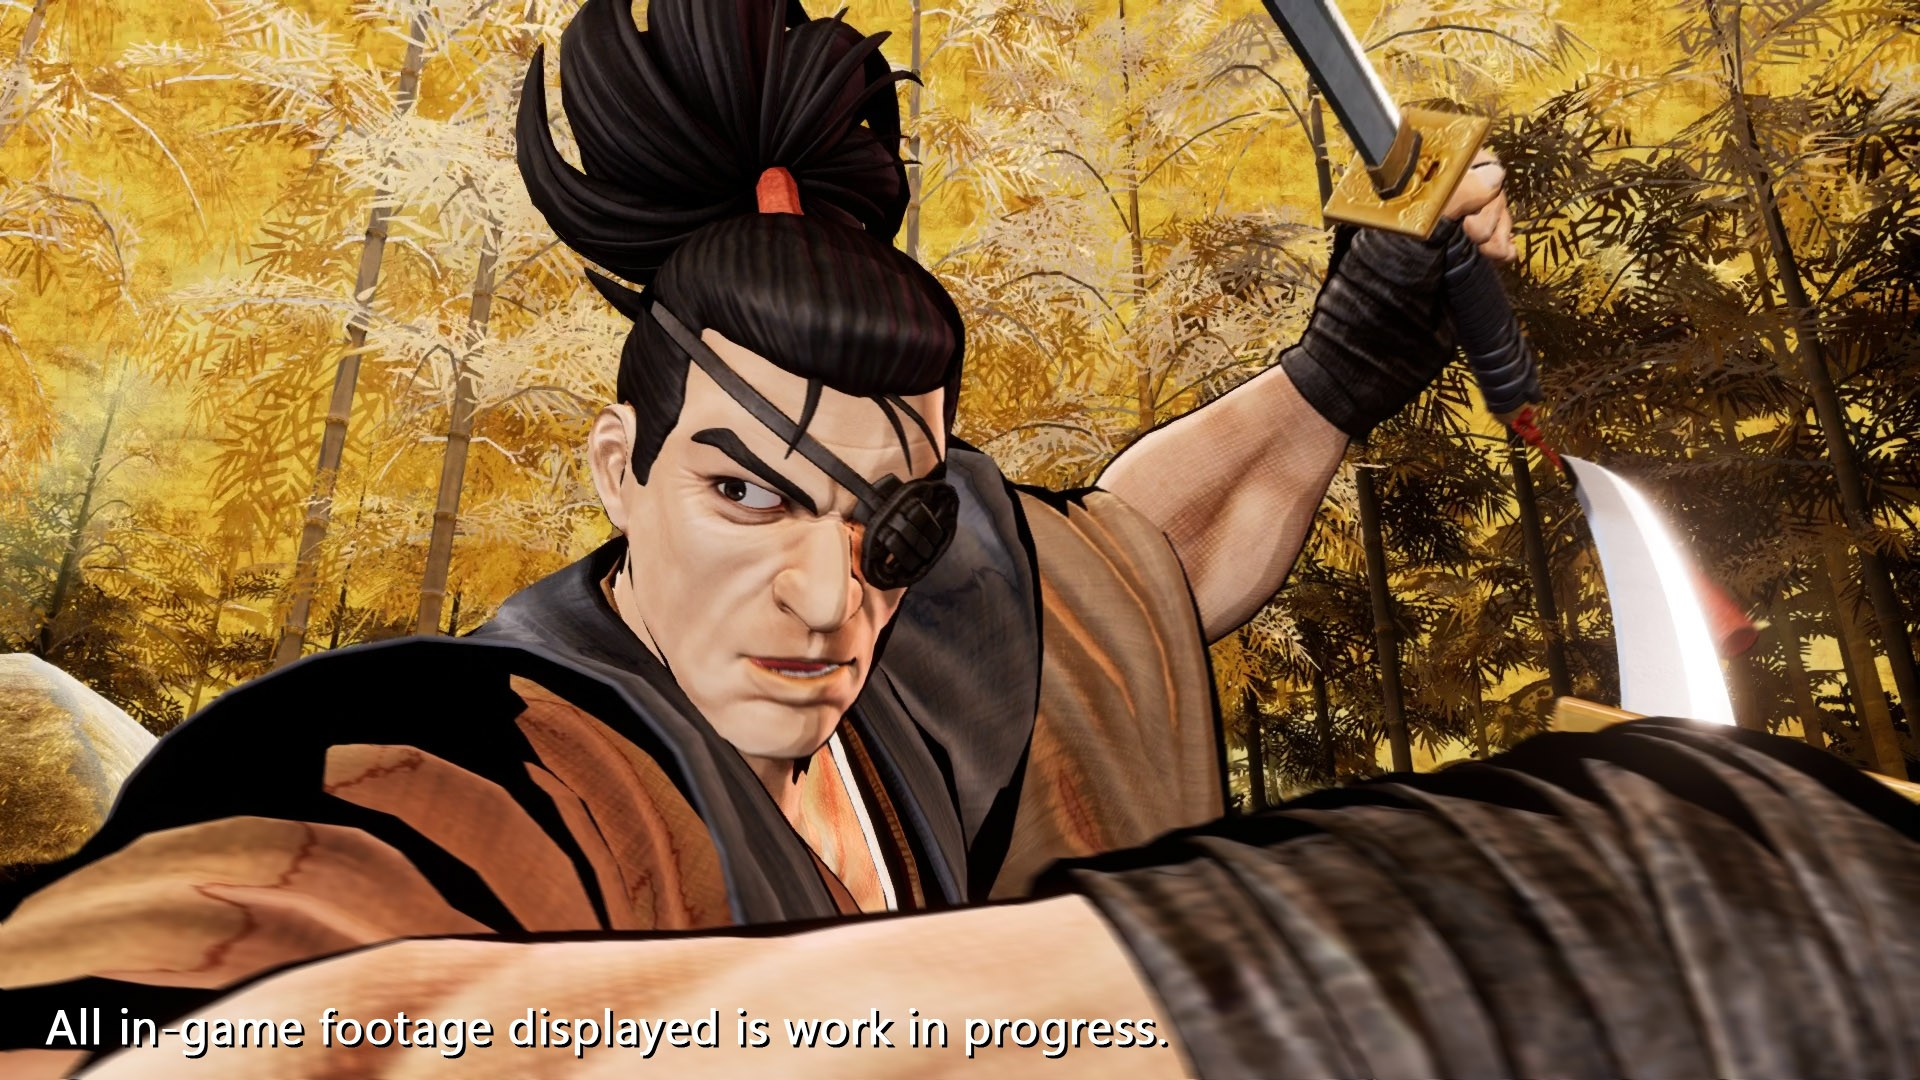 Samurai Spirits, Samurai Shodown, SNK, Nintendo Switch, Switch, Europe, update, Western release, West, release date, gameplay, features, price